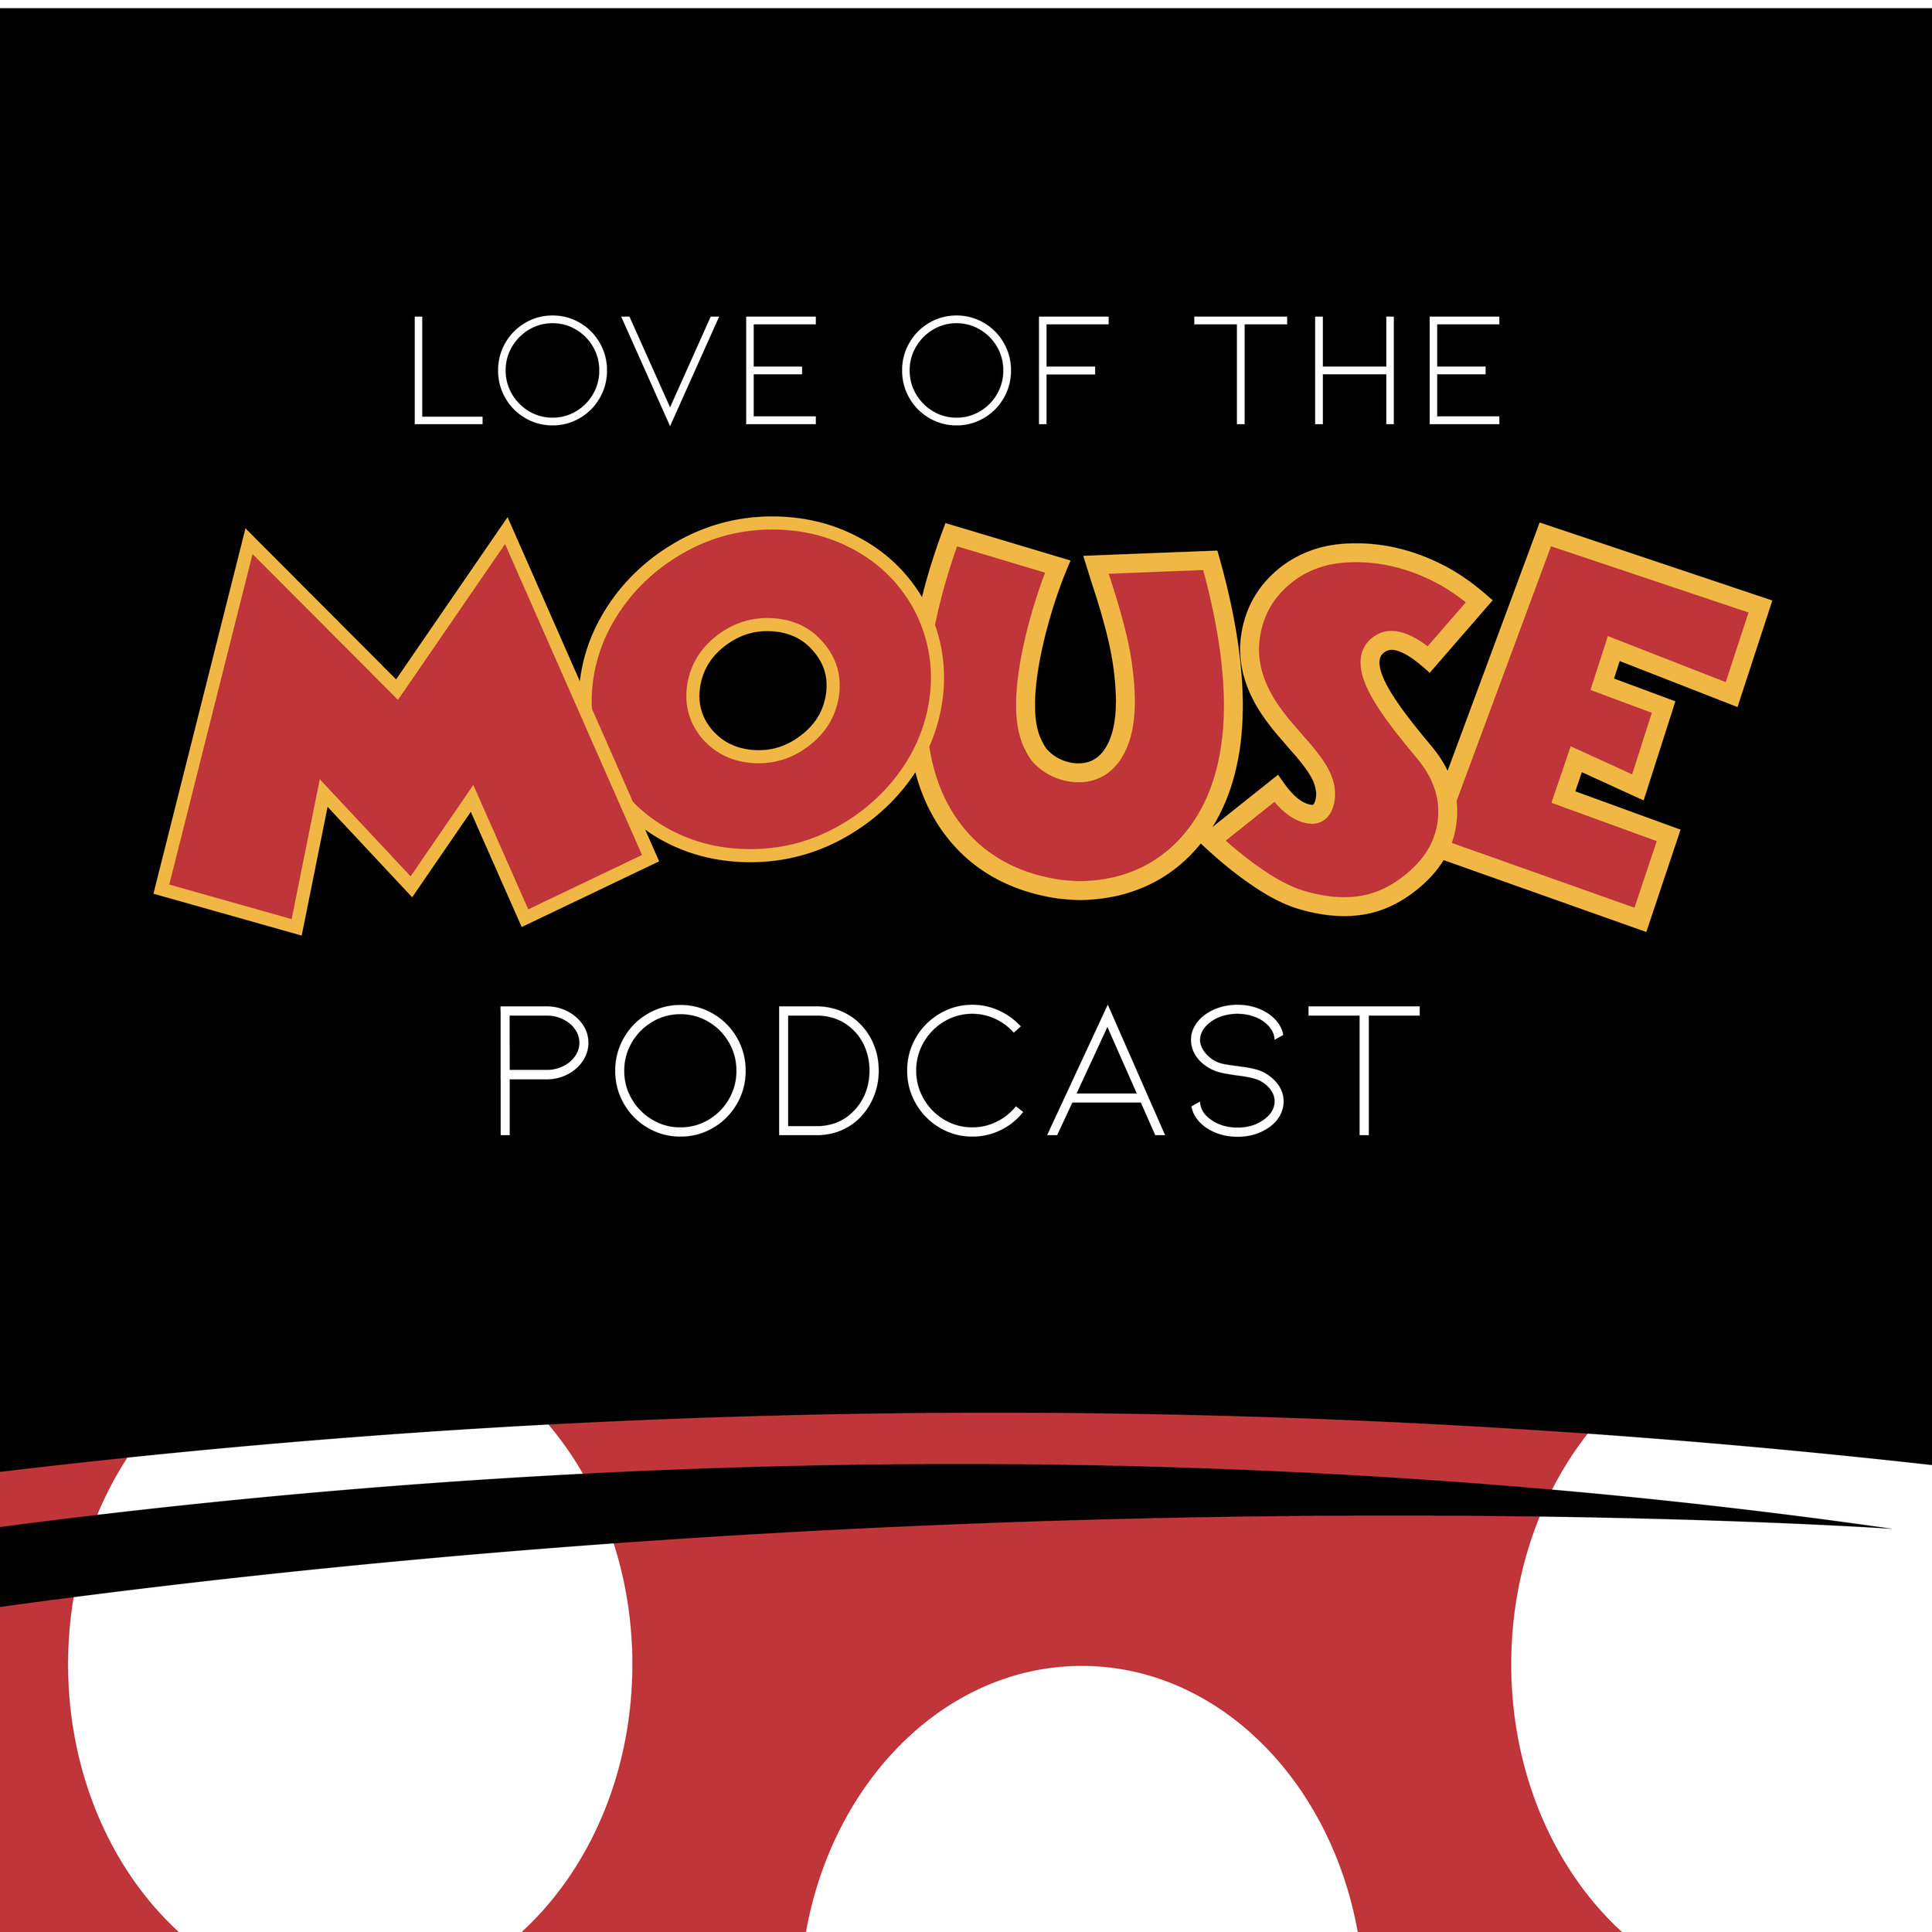 We were deeply saddened to hear of the passing of Russi Taylor, the longtime voice of Minnie Mouse, this past weekend. We figured it would only be appropriate to showcase our Love of the Mouse and temporarily change our logo to honor a Disney Legend.